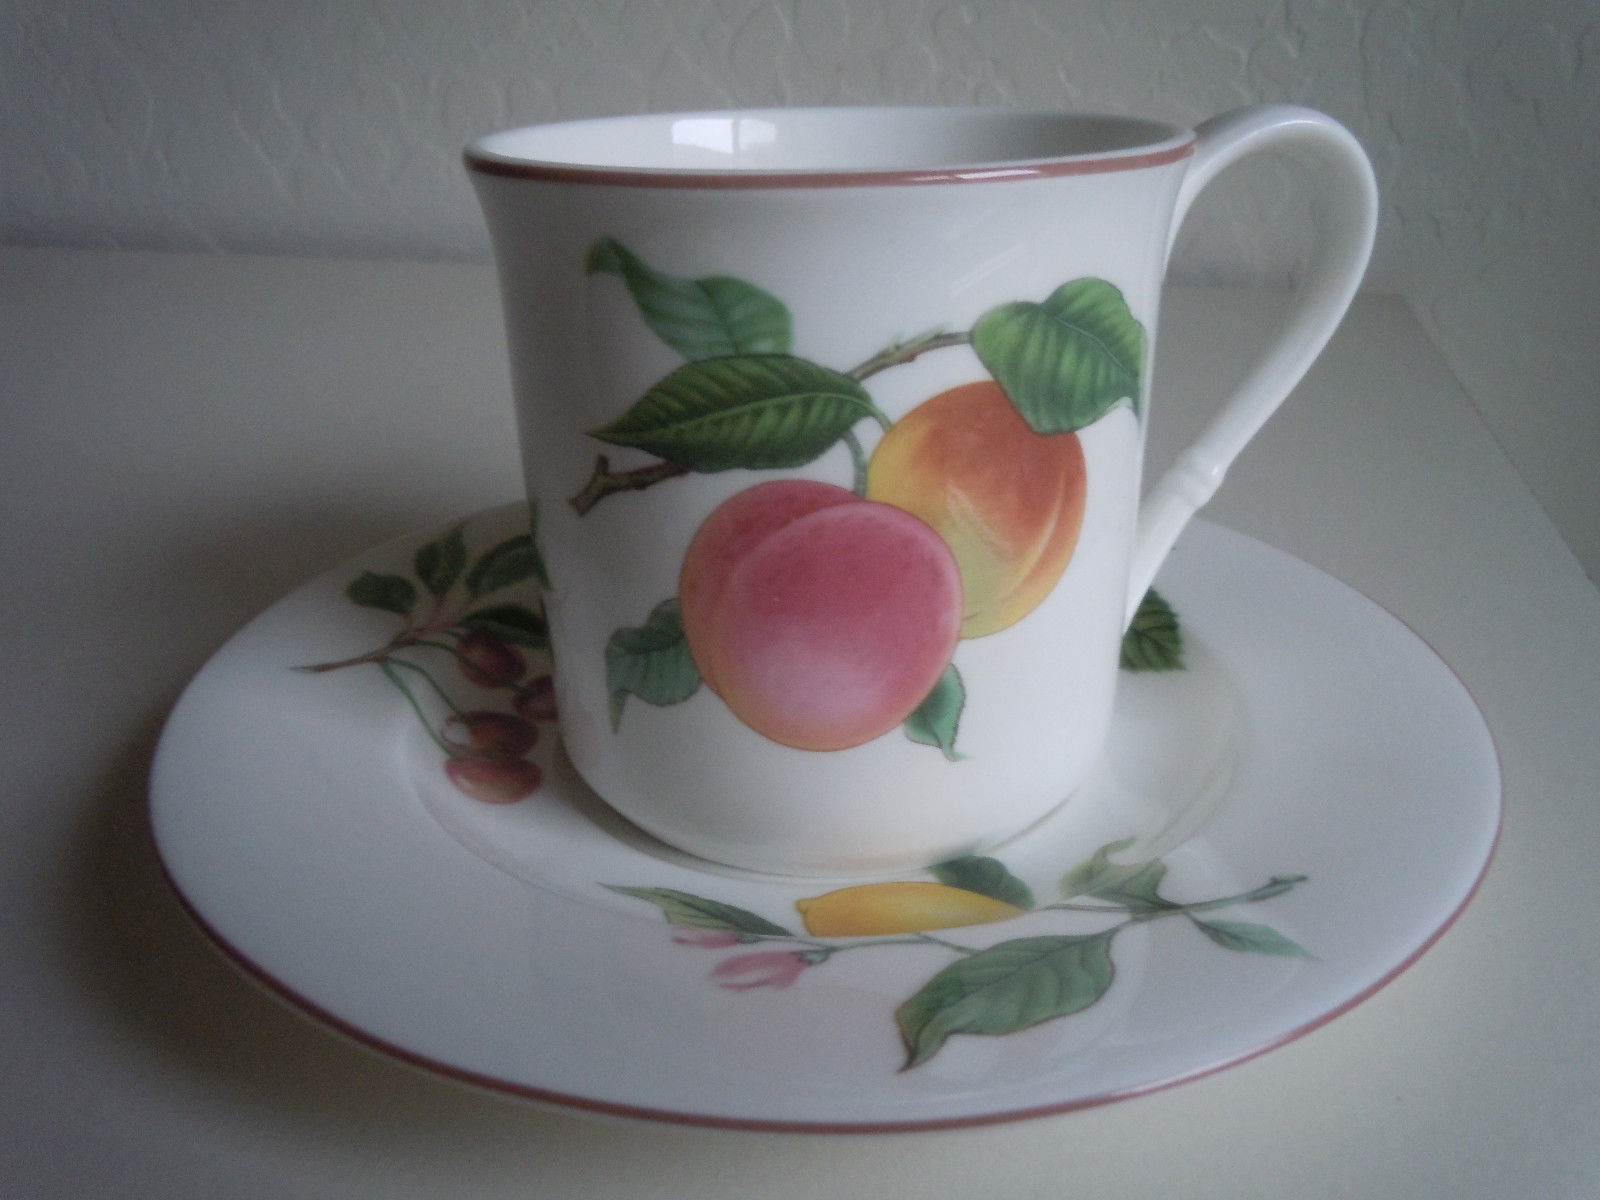 Christopher Stuart Fruit Finale Flat Cup and Saucer